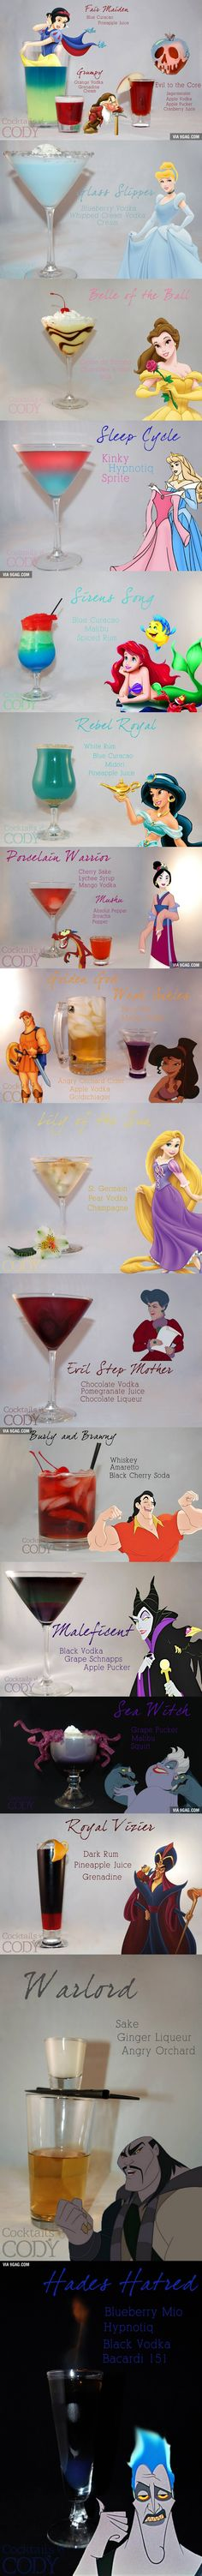 16 Disney Themed Cocktails You Will Want To Try. ahh my child and adult self are re-united